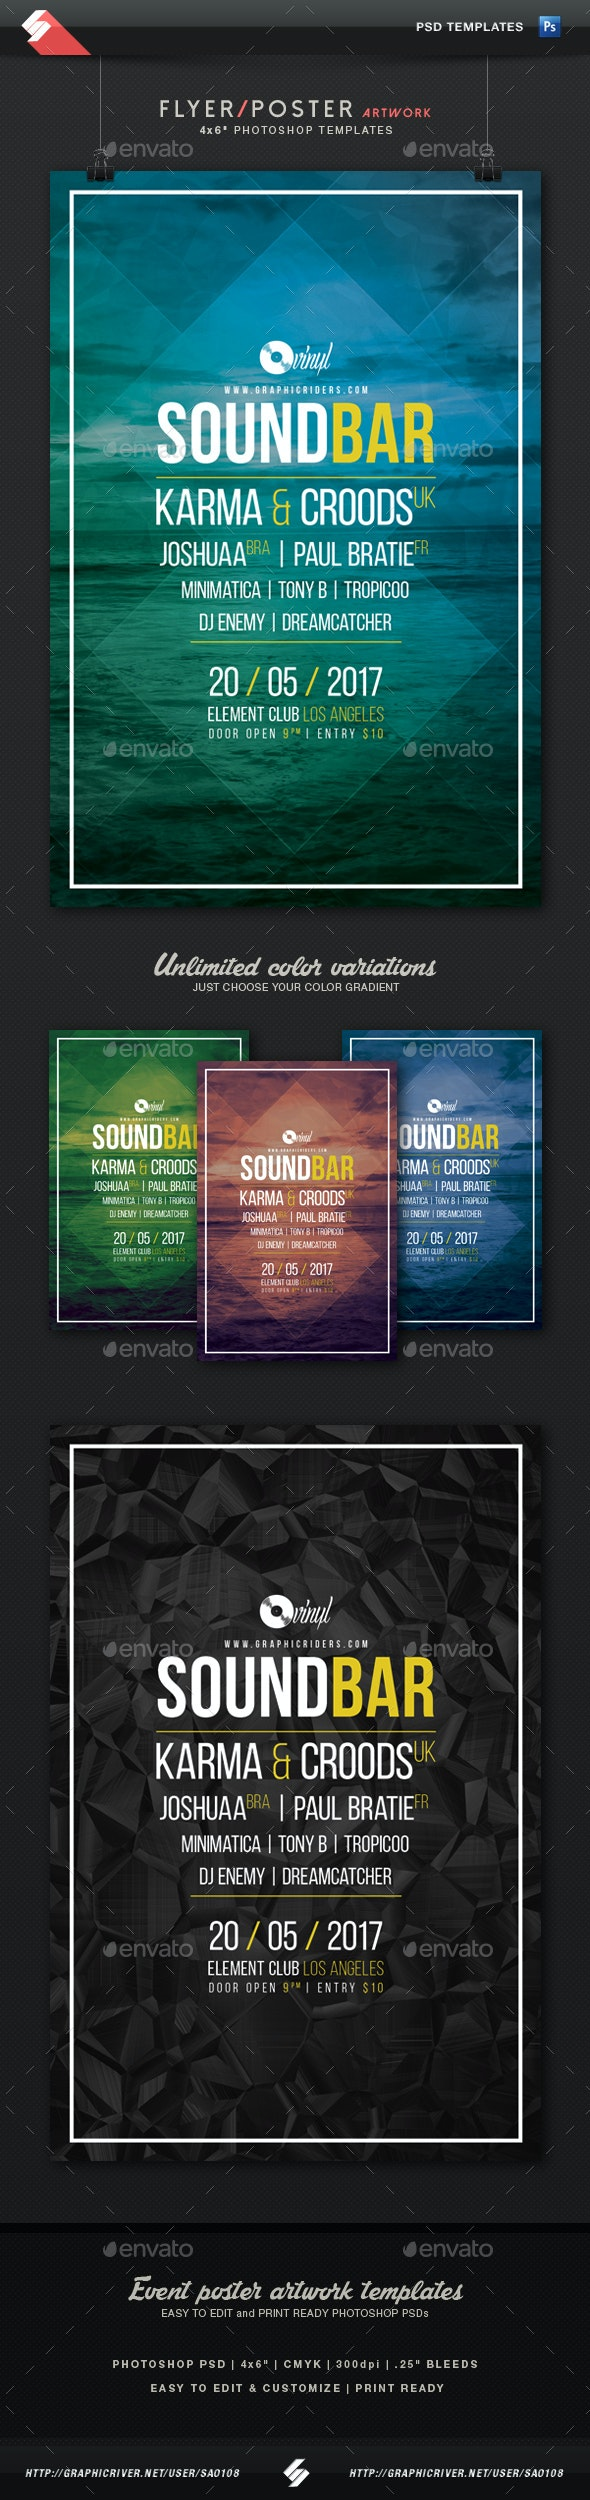 Sound Bar - Minimal Party Flyer Template - Clubs & Parties Events